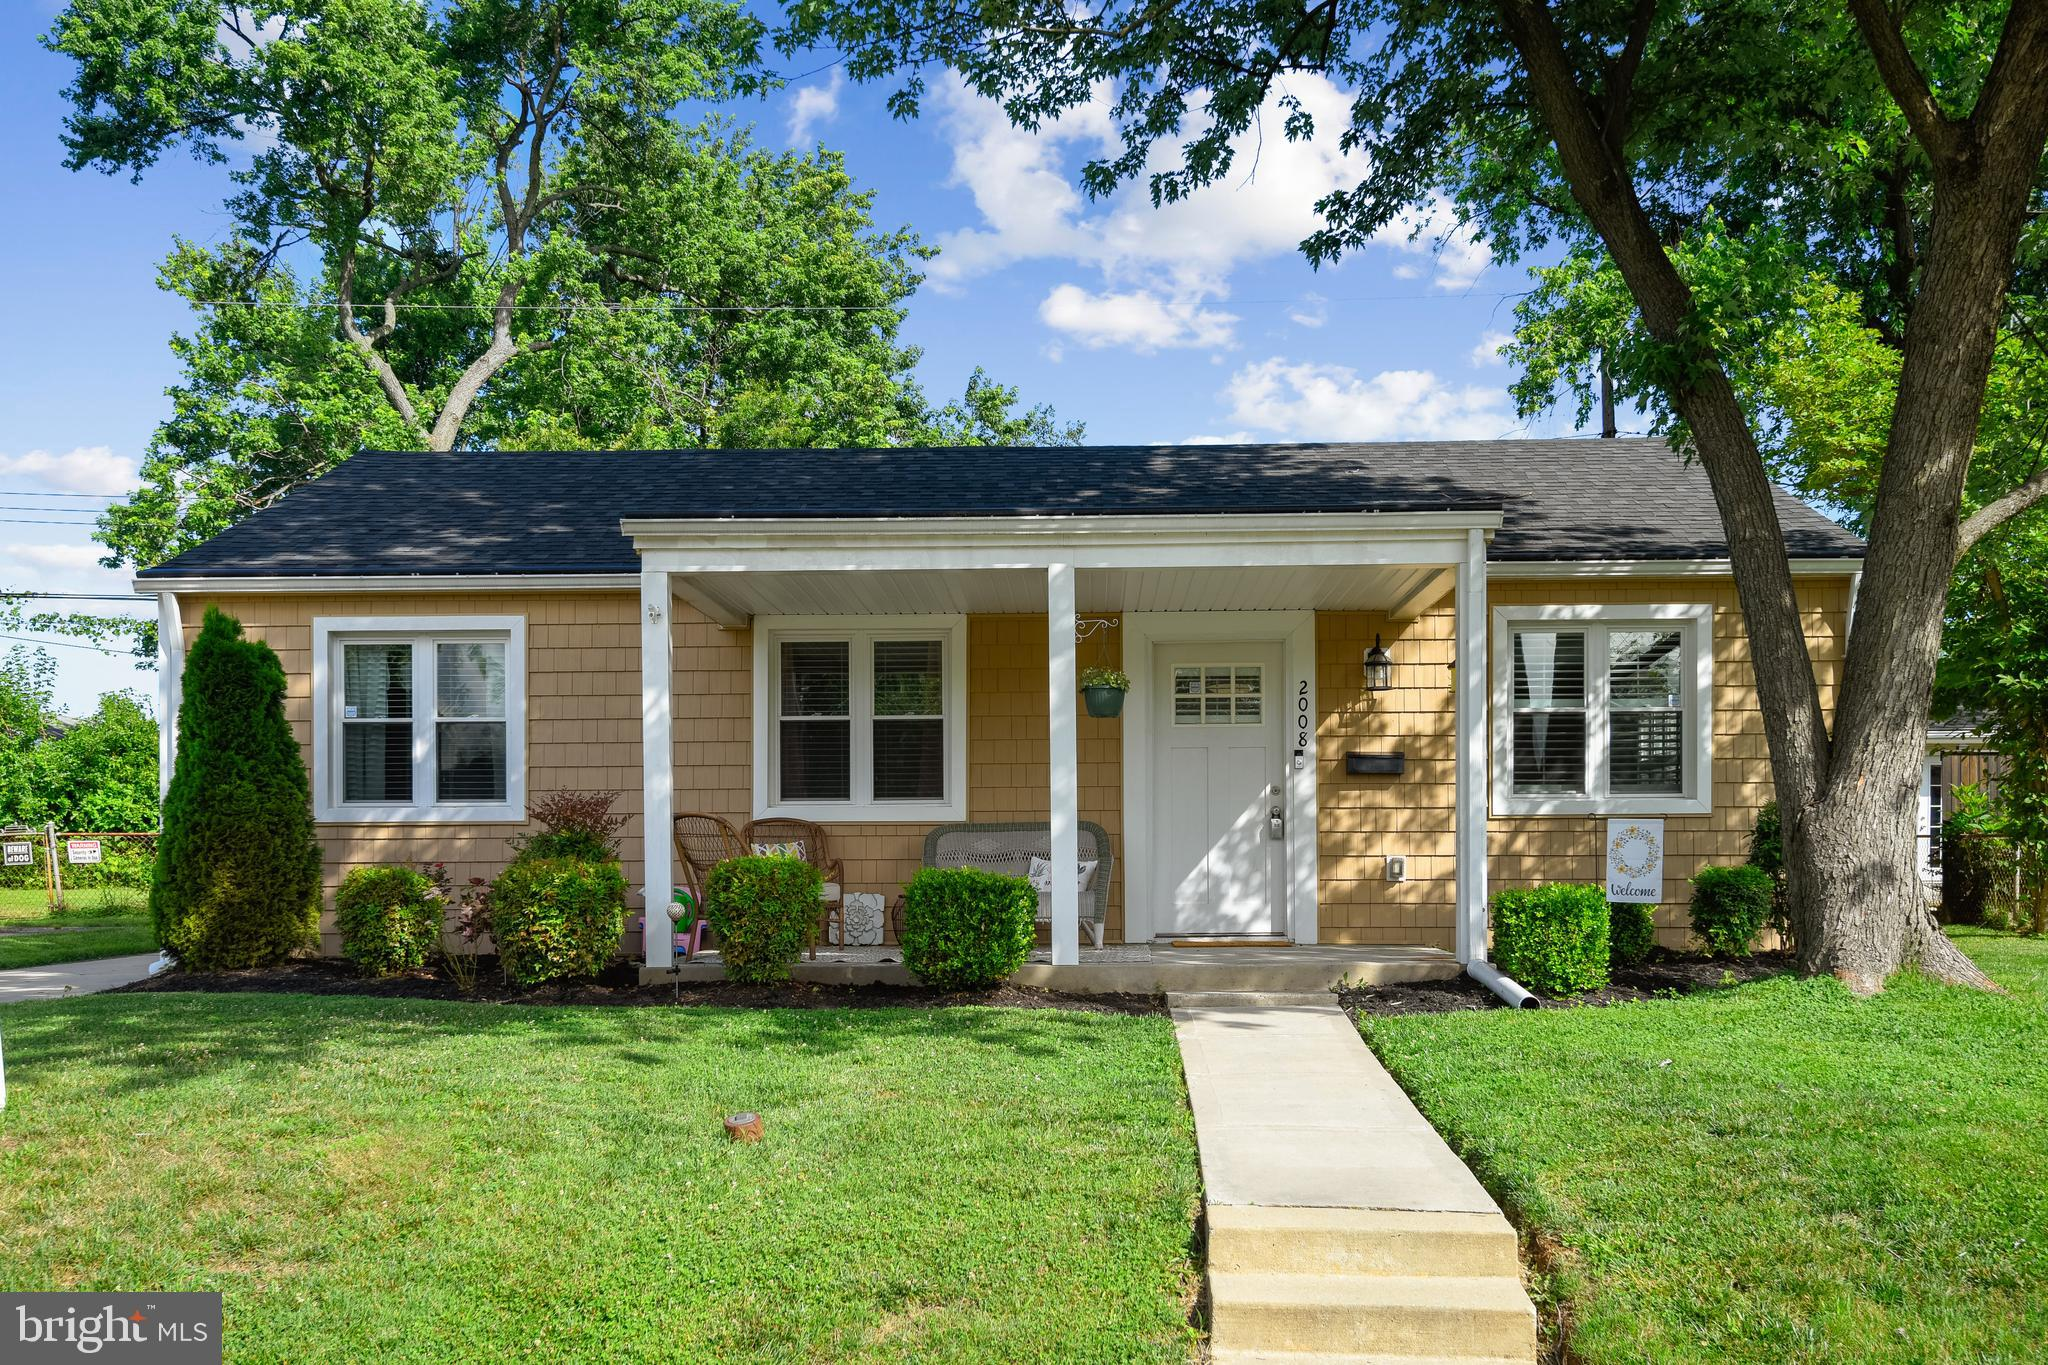 This gorgeous 3 bed; 2 bath rancher was COMPLETELY renovated in 2015 with a brand new interior and e